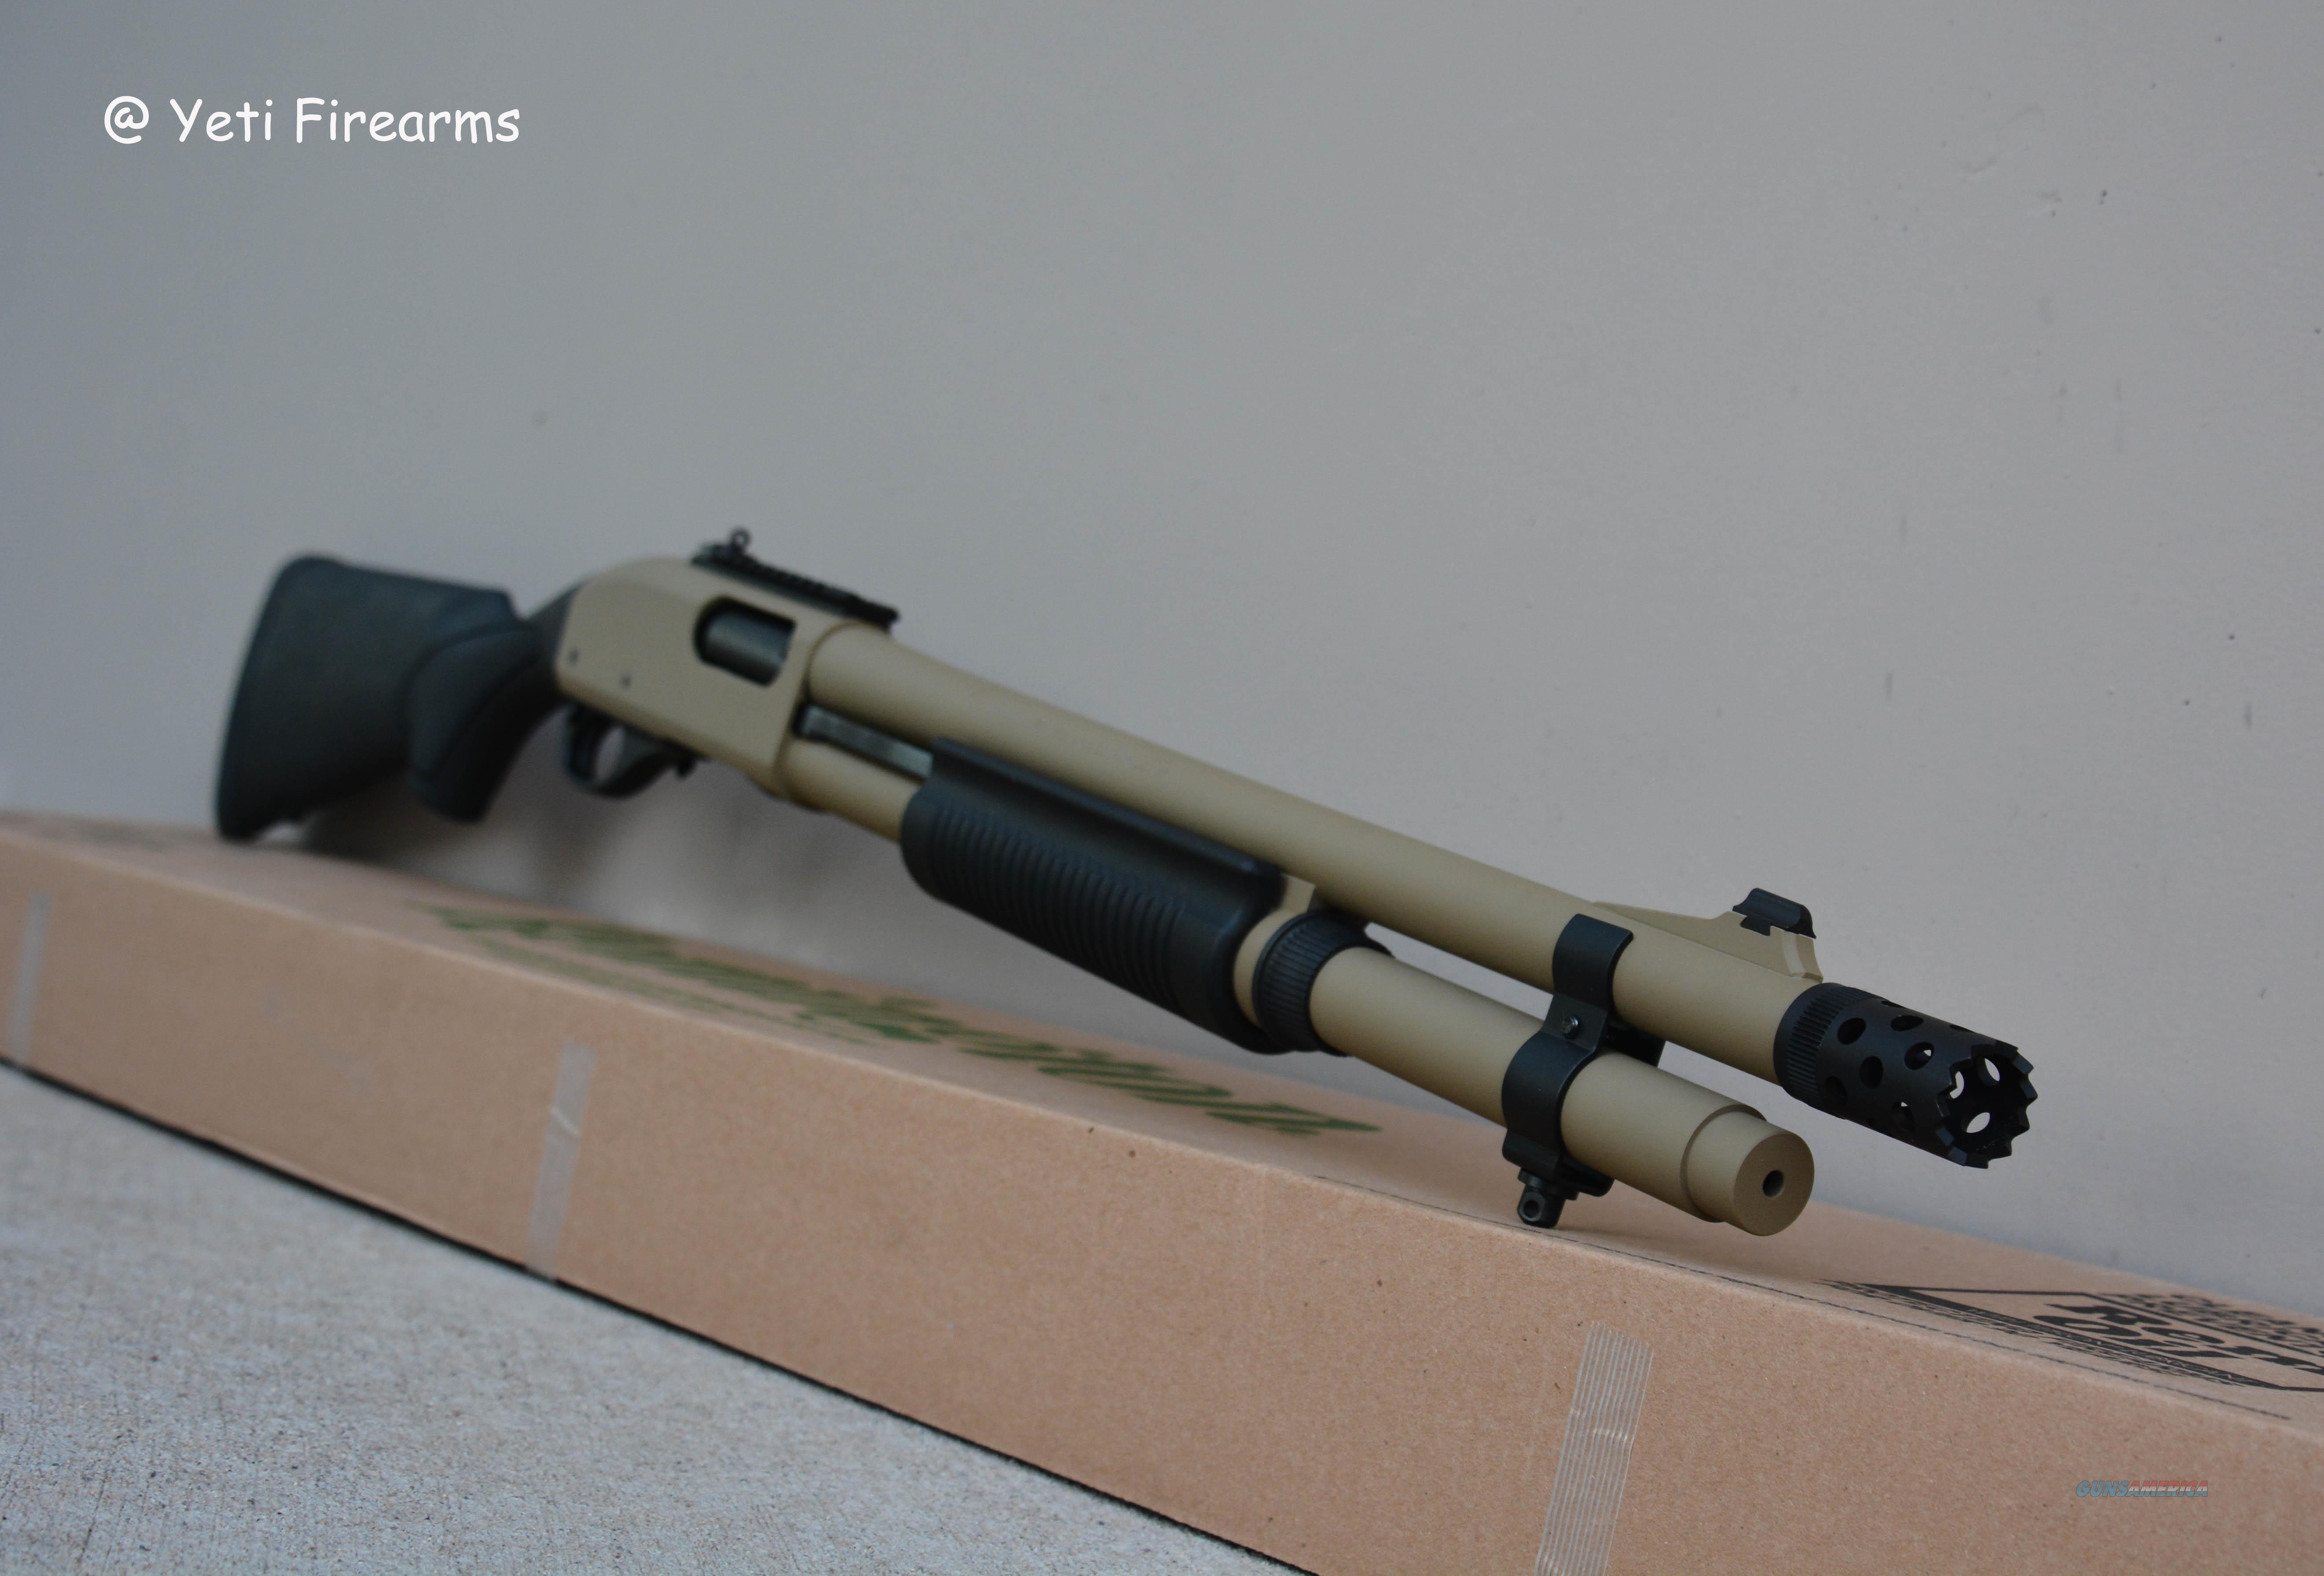 X-Werks Remington 870 81198 12 Ga Coyote Tan CT  Guns > Shotguns > Remington Shotguns  > Pump > Tactical